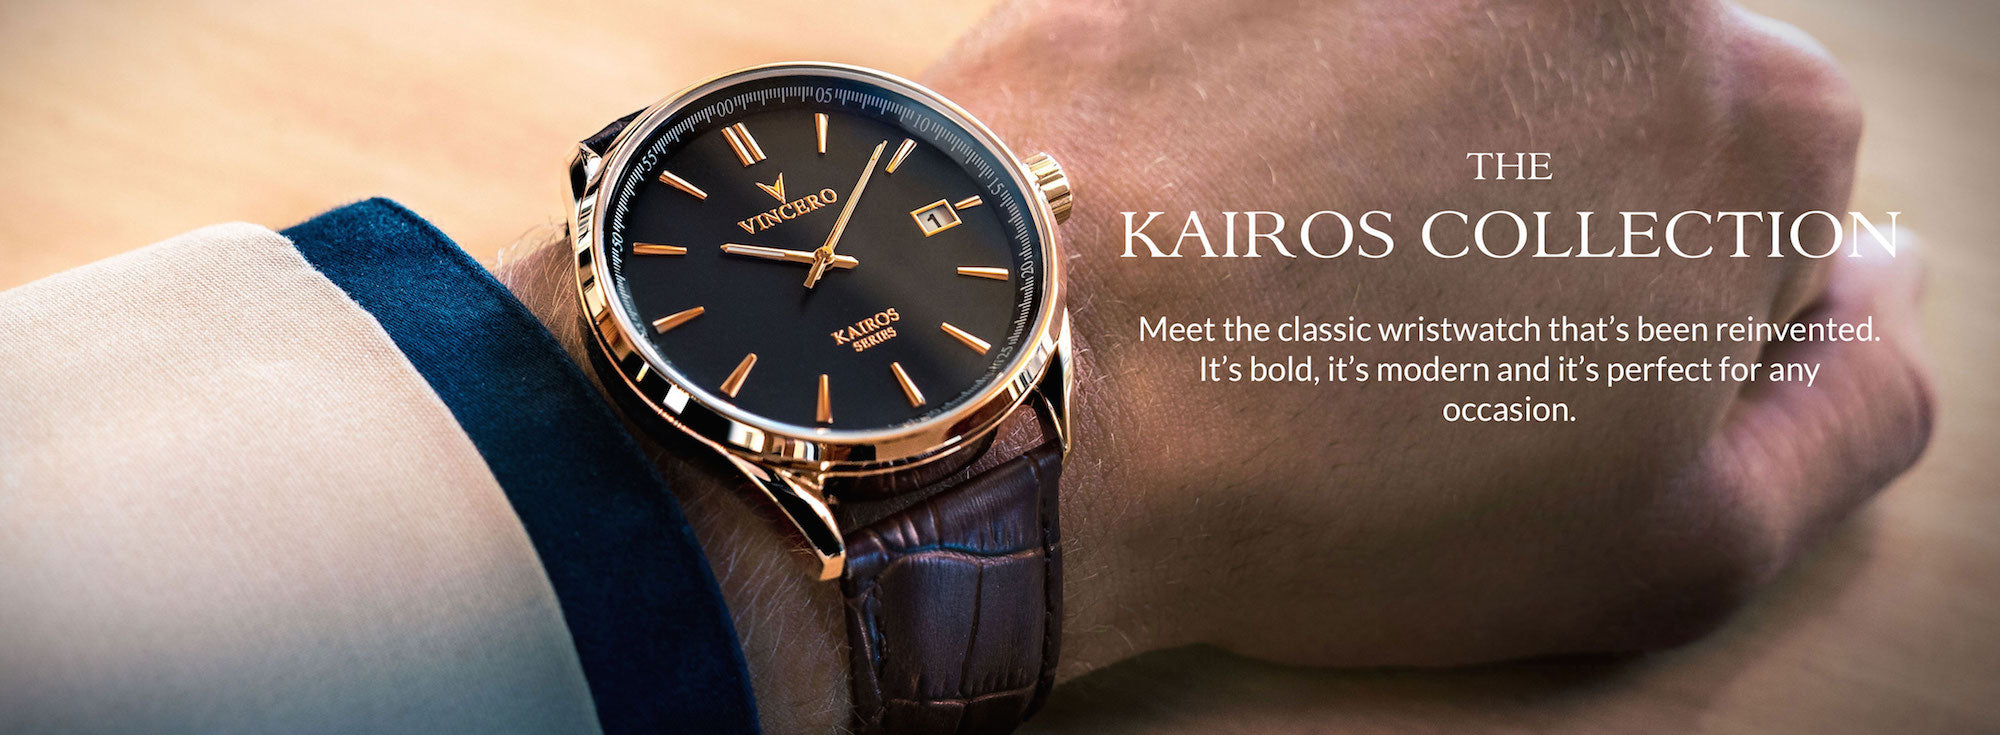 Kairos Collection - Vincero Watches